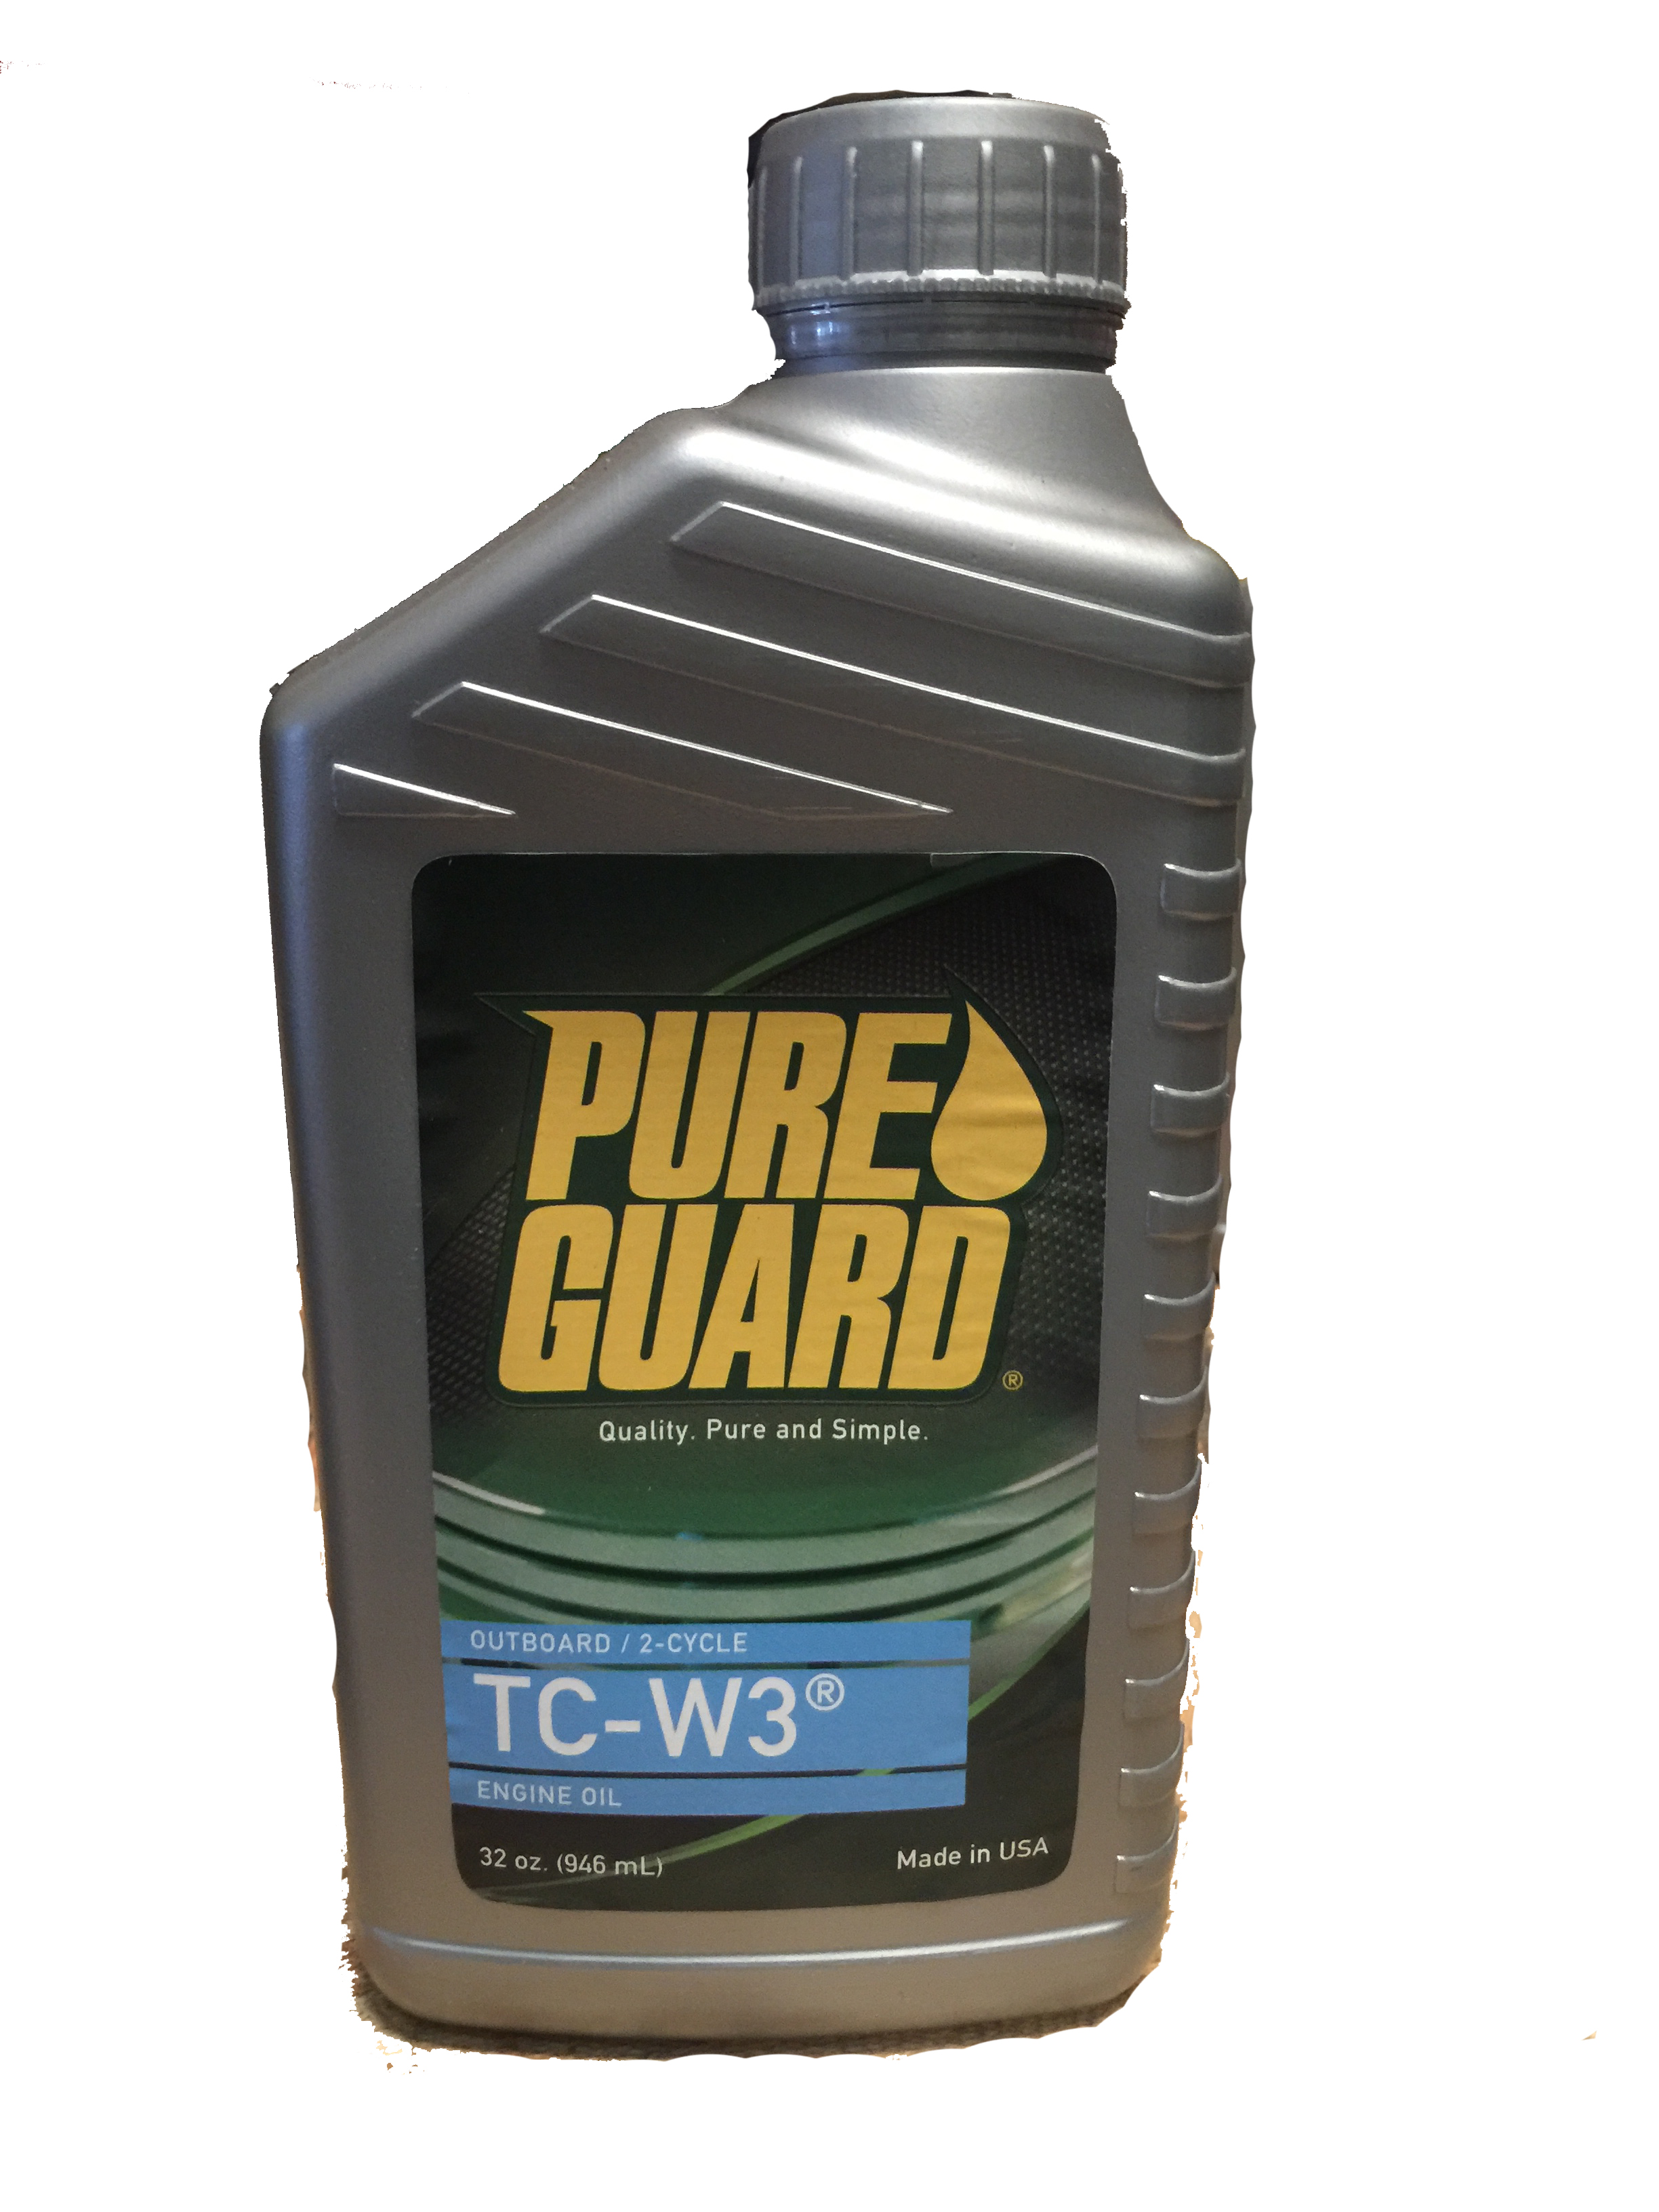 Pure Guard TC-W3 Image